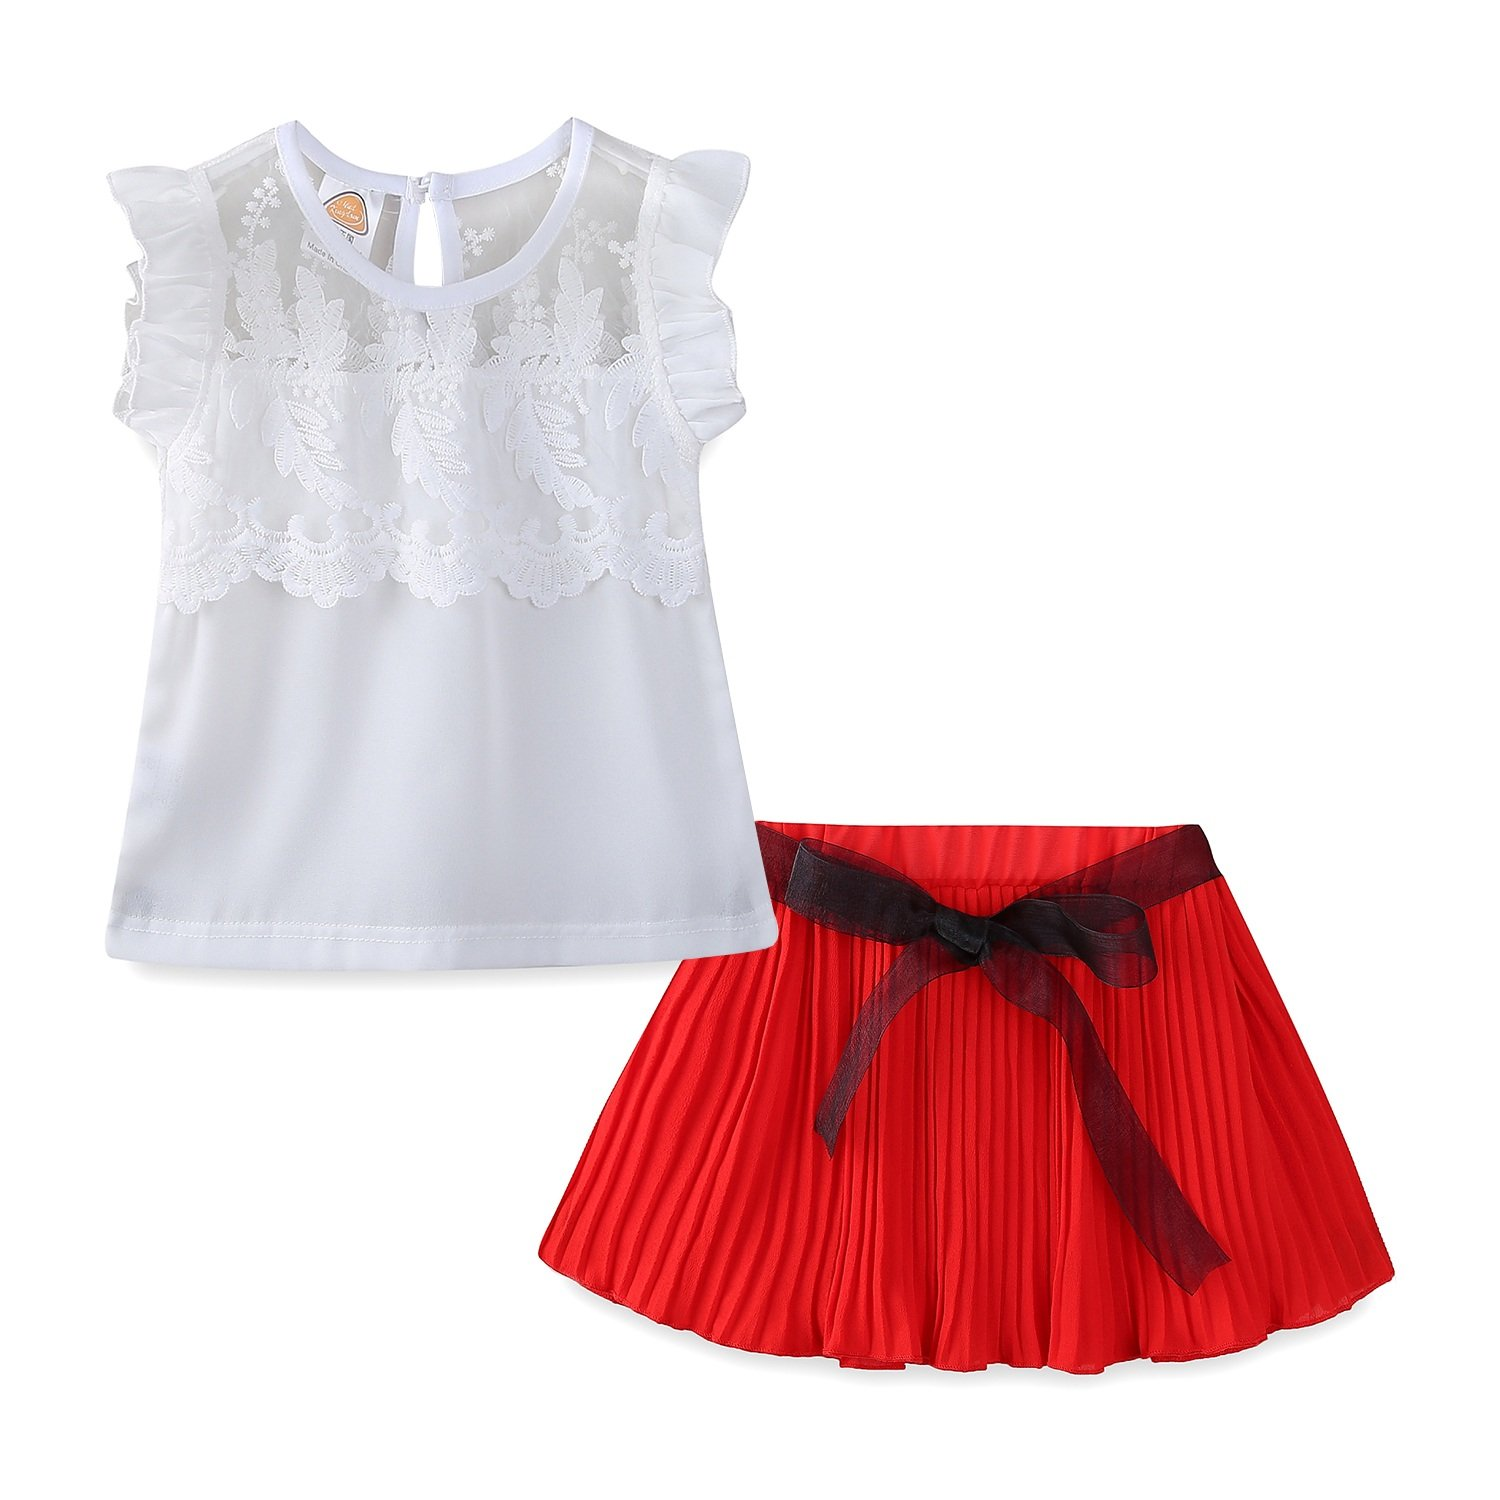 Mud Kingdom Little Girls Outfits with Skirts Chiffon Summer Sets